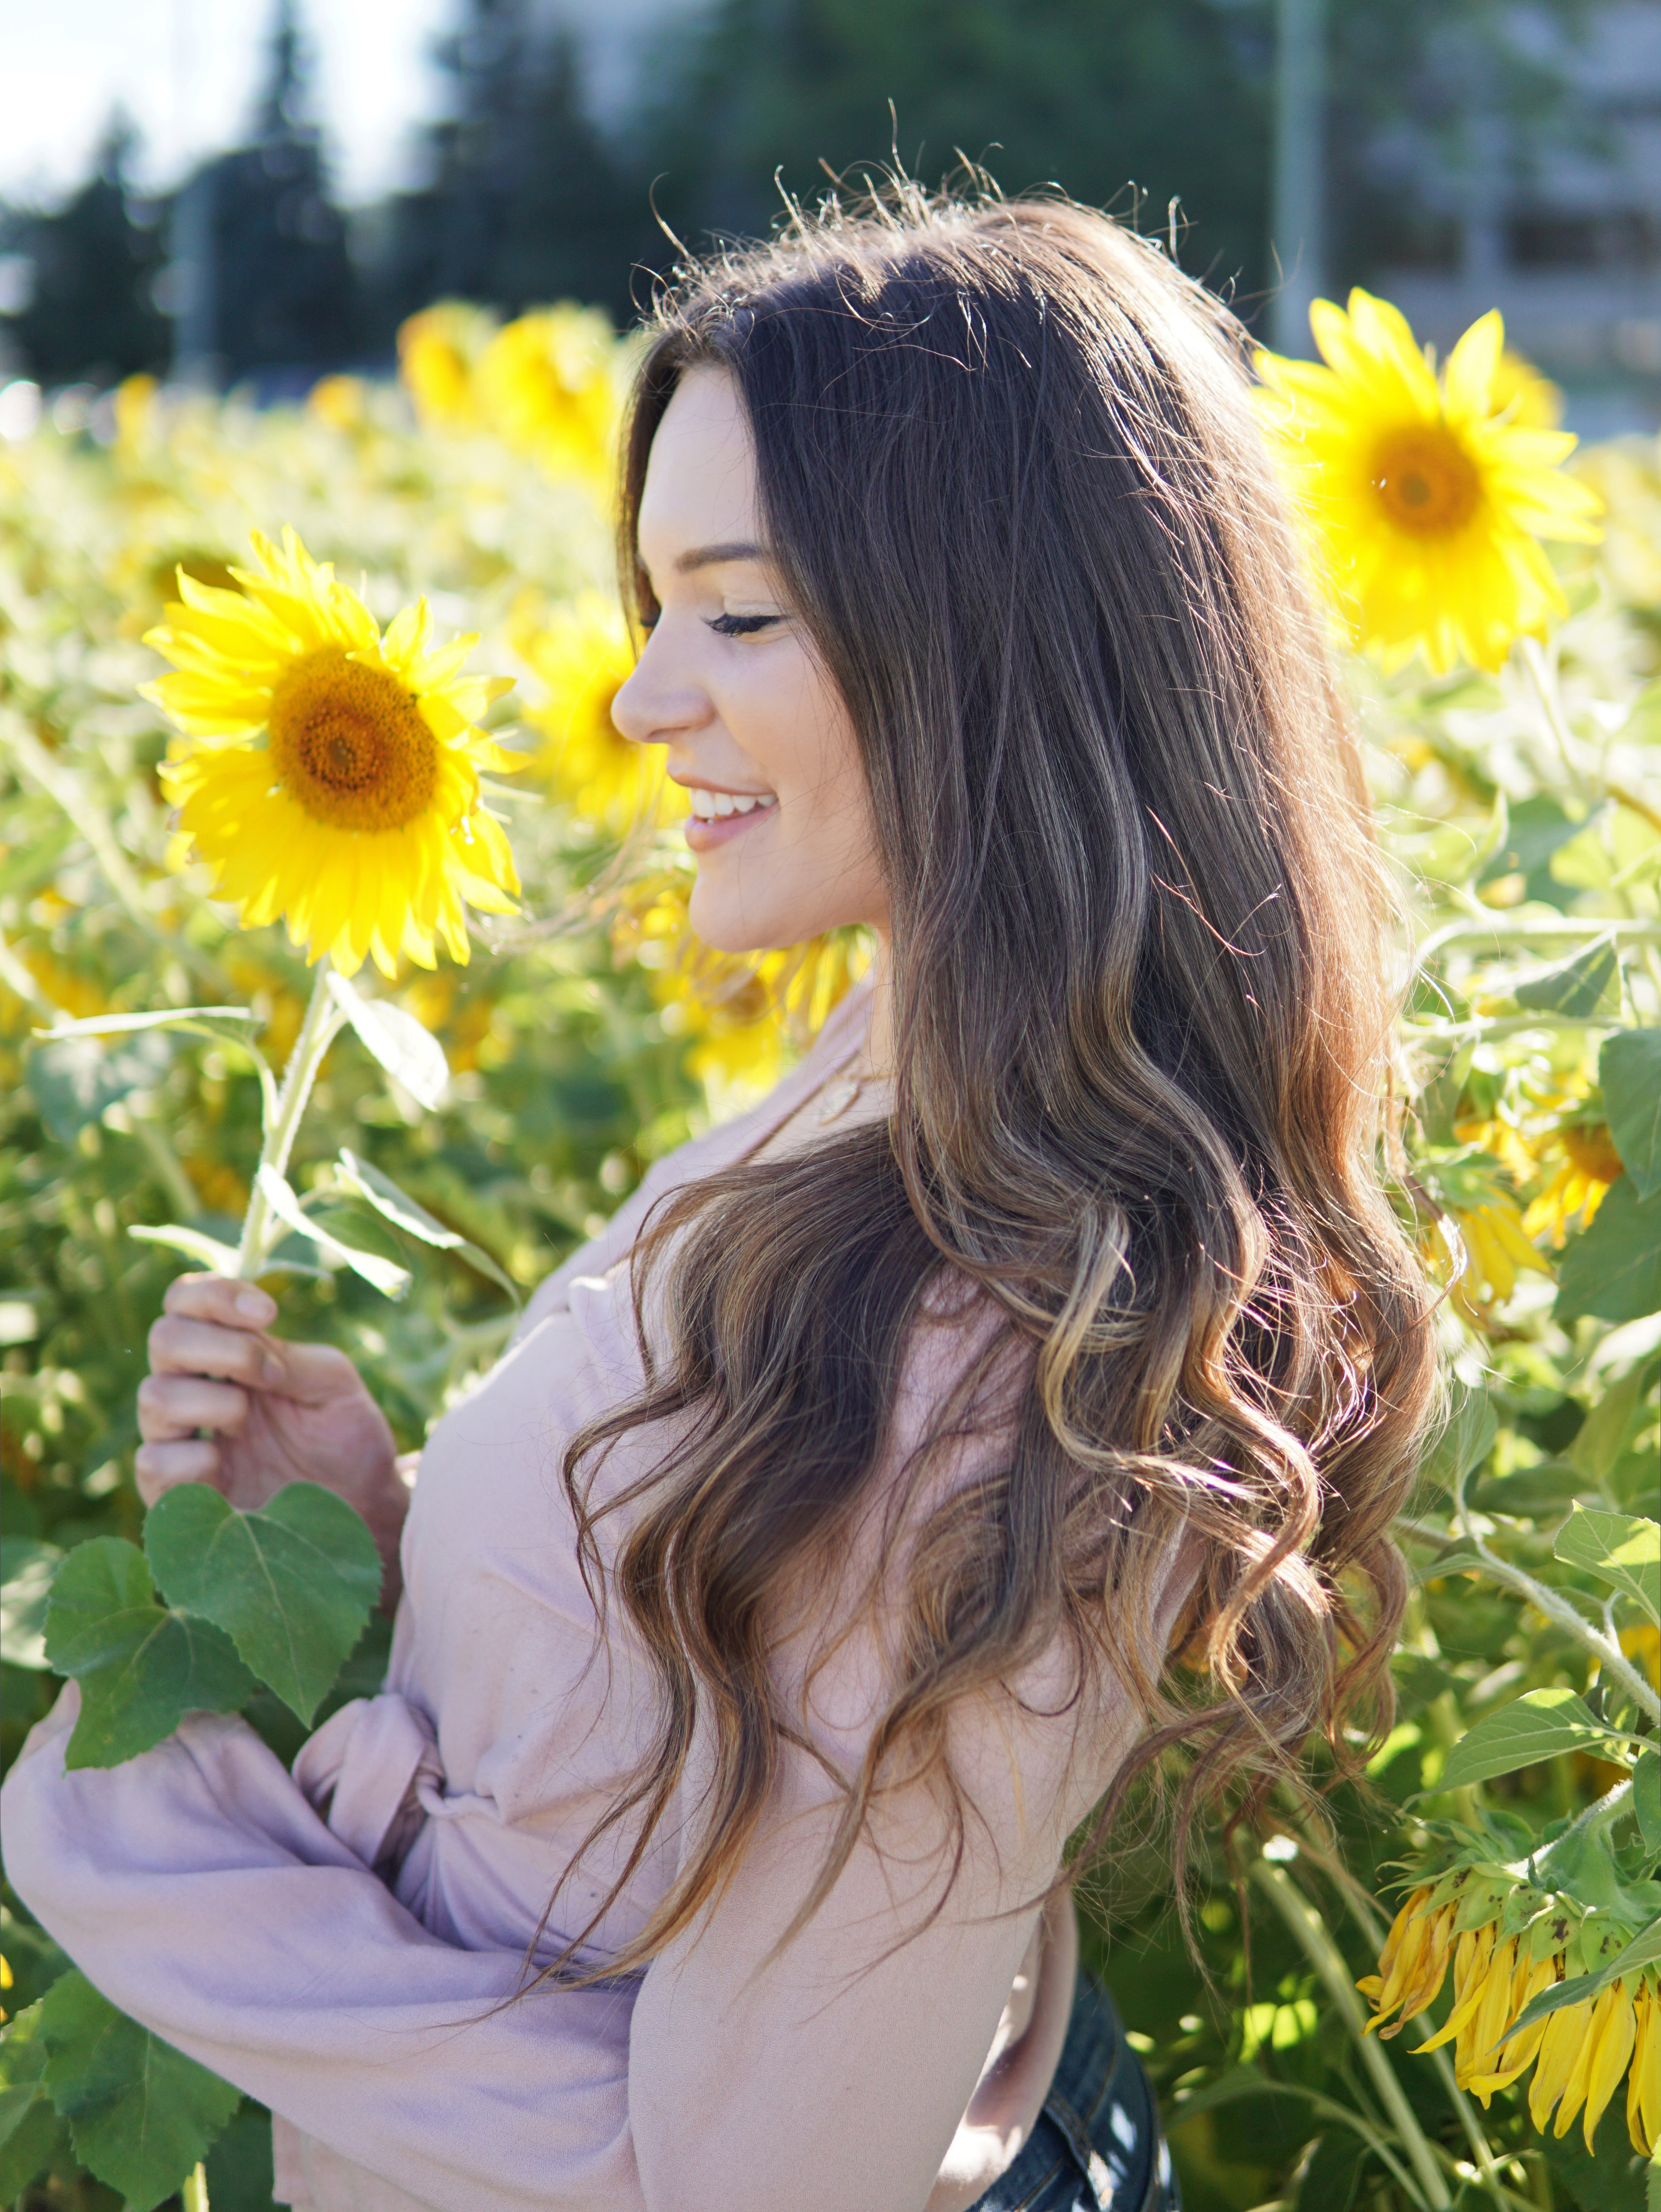 Mash Elle | hello fall hair care | changing seasons | sunflowers | hairstyle fall